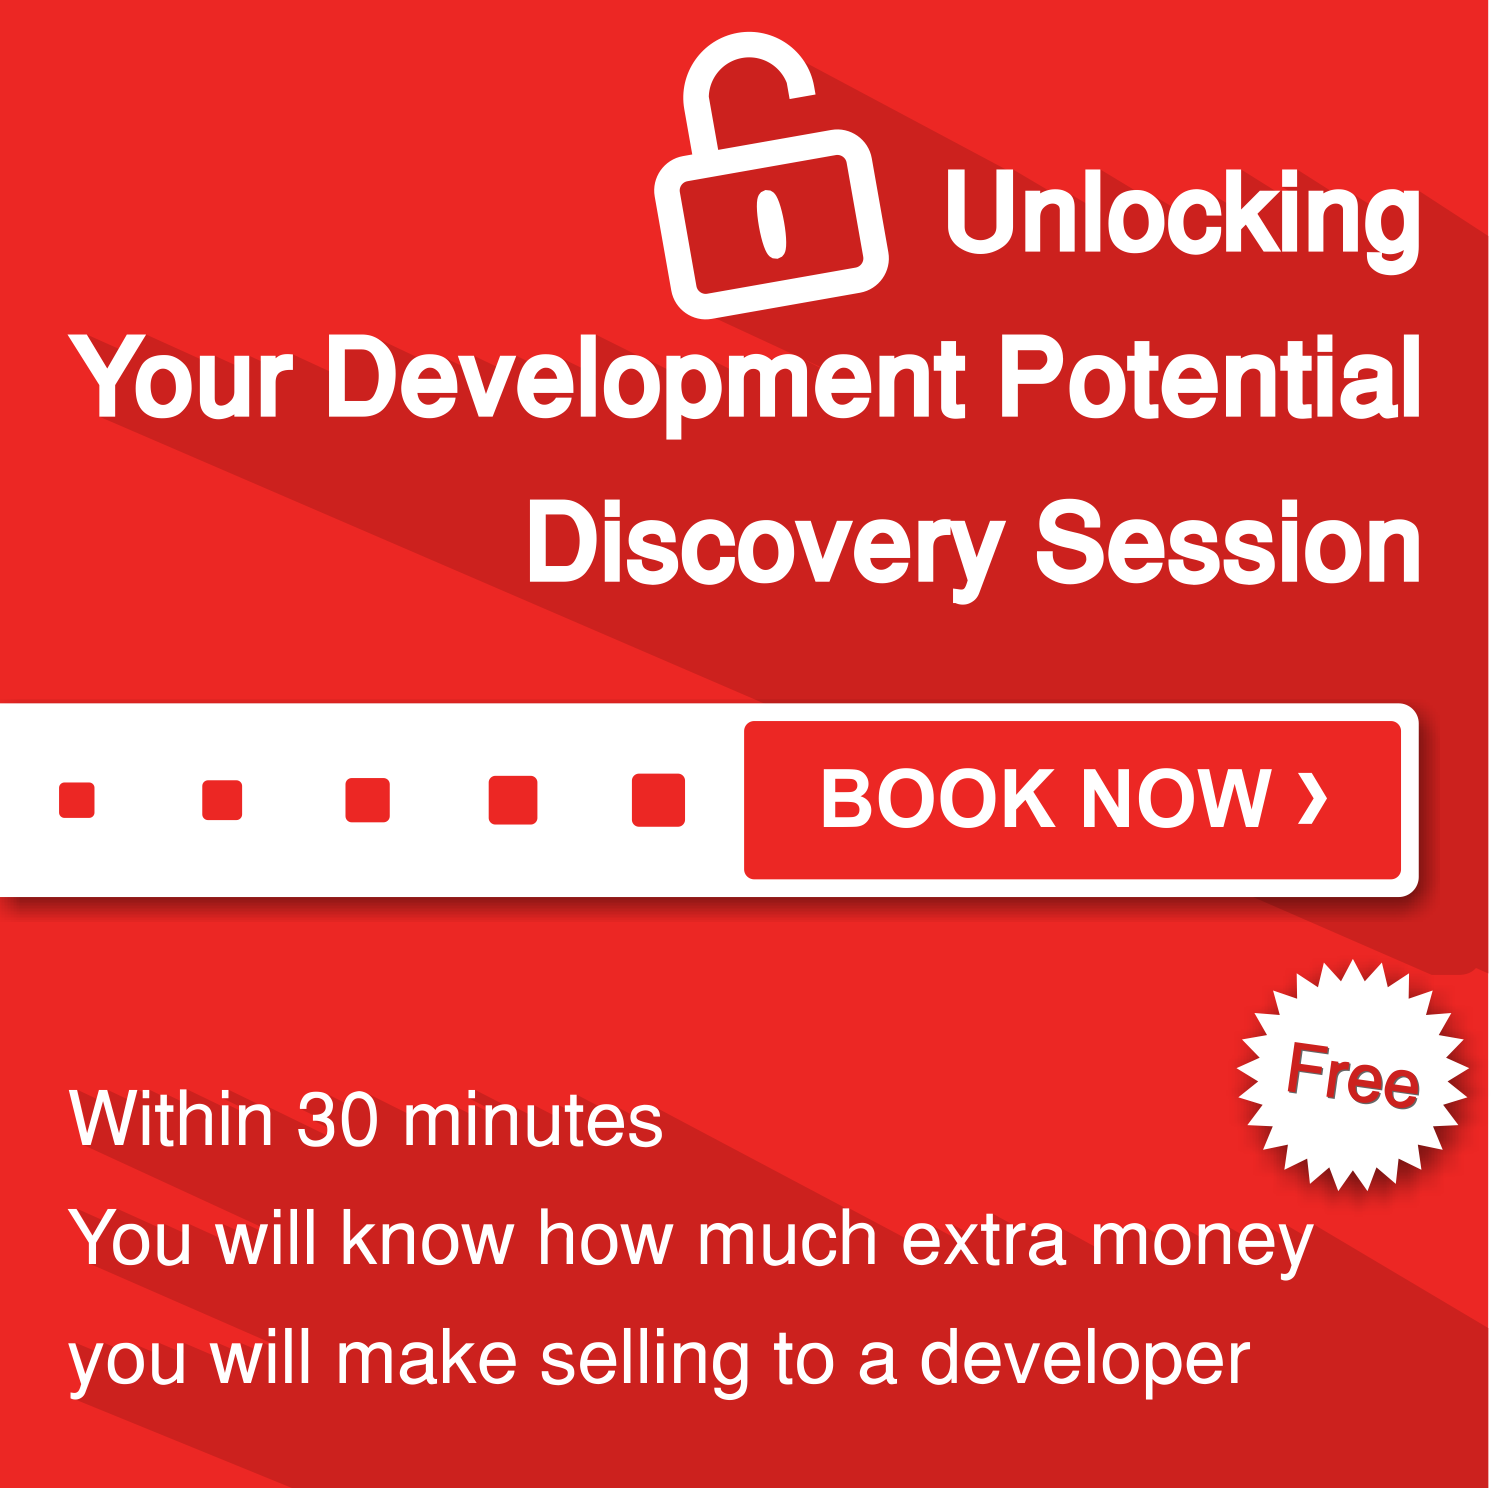 Unlocking Your Development Potential Discovery Session